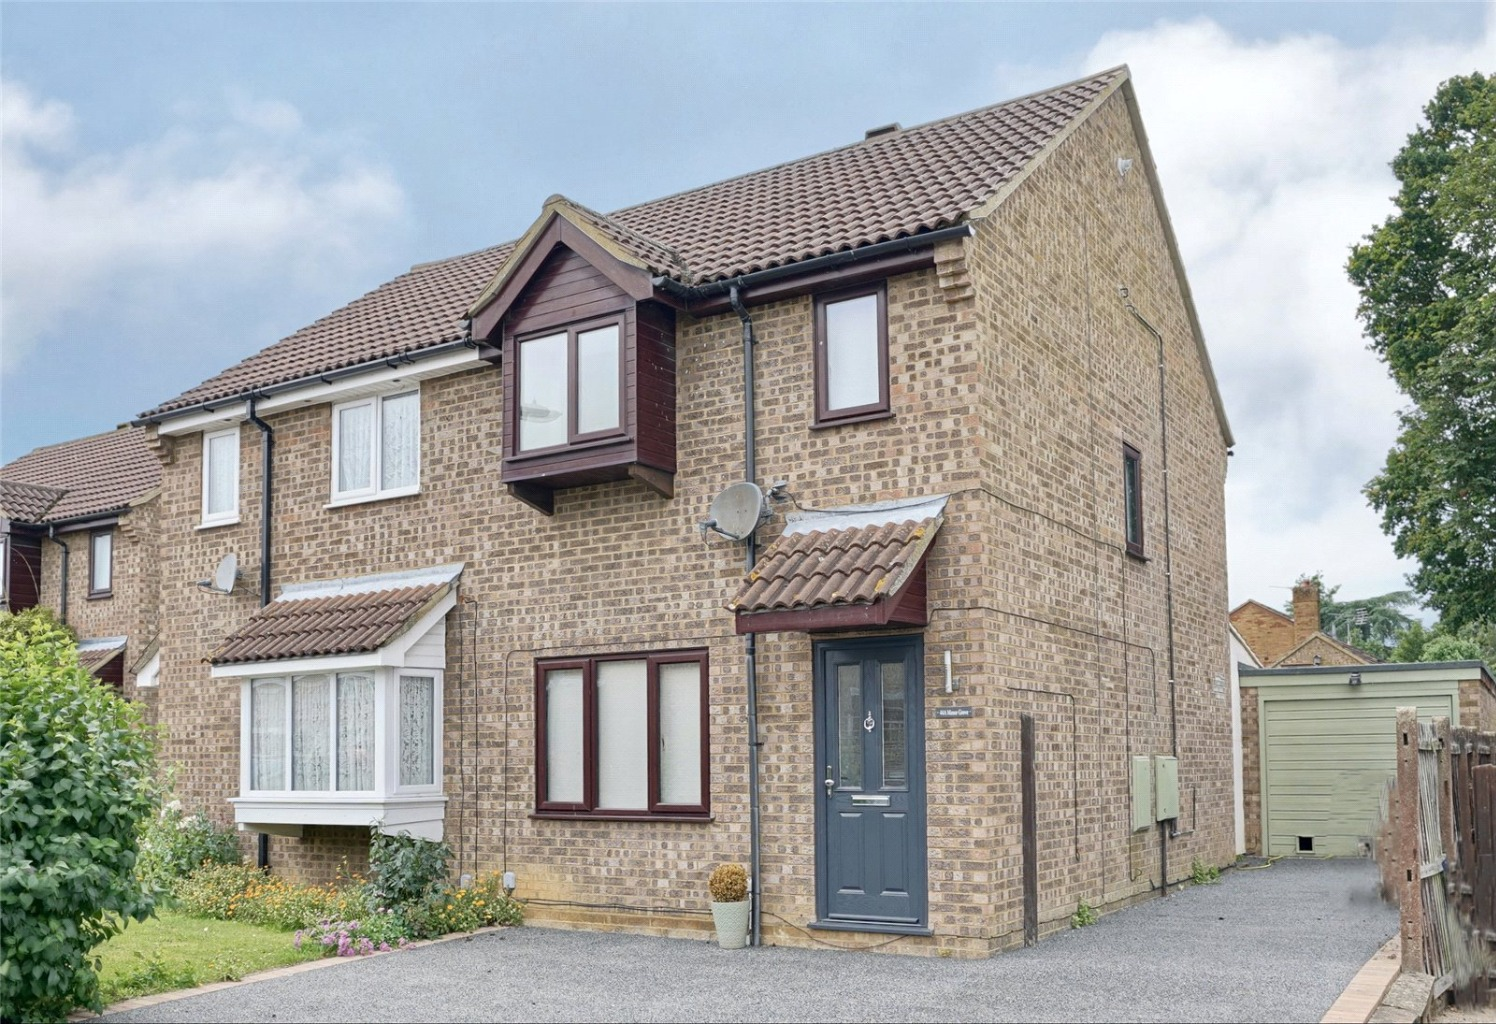 3 bed semi-detached house for sale in Manor Grove, St. Neots  - Property Image 1